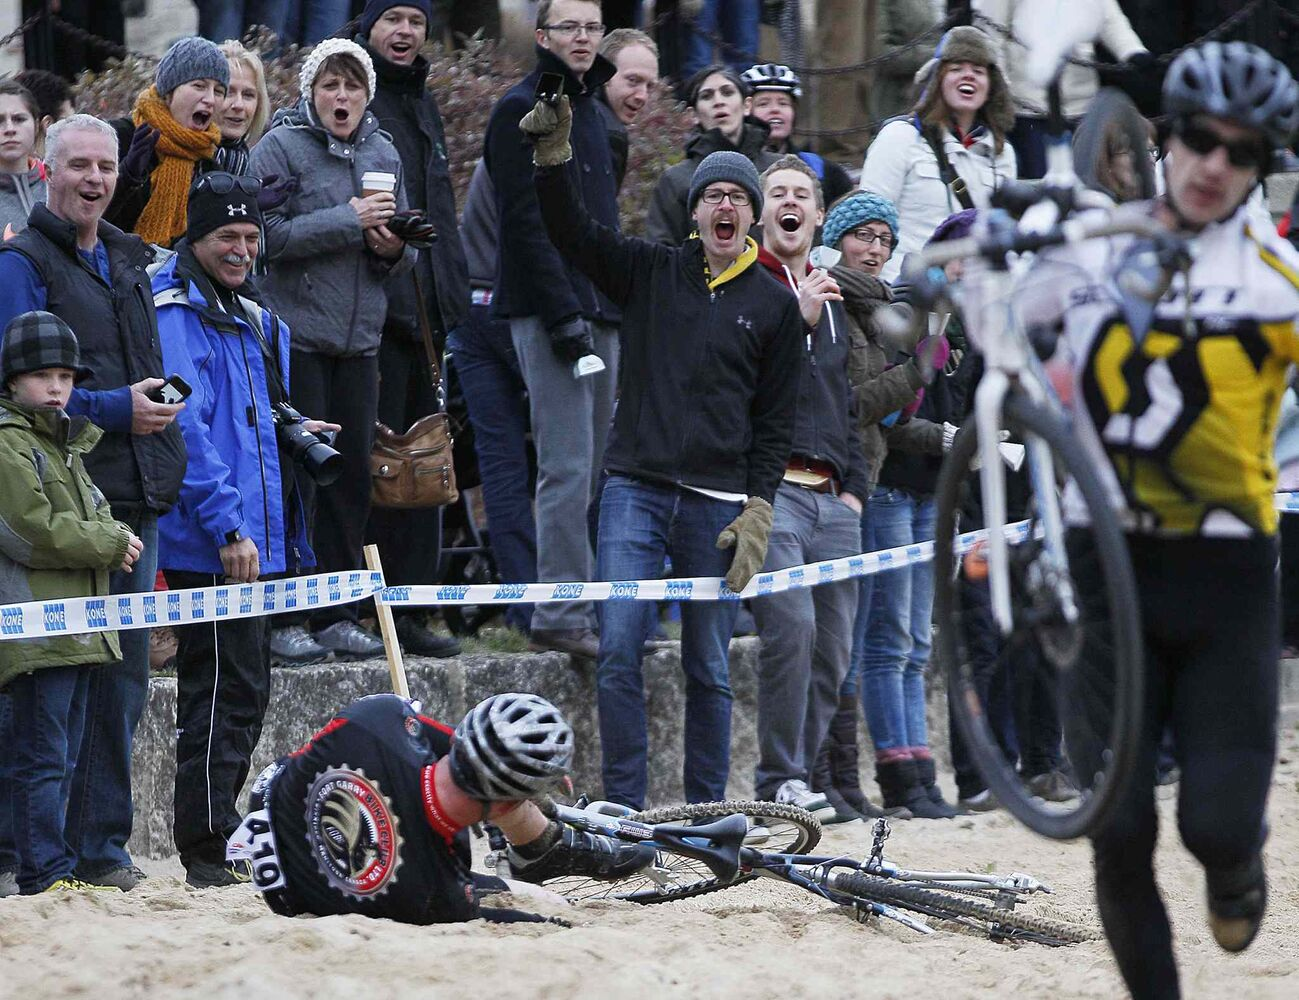 Fans react as Luke Enns (419) takes a spill in the sandpit.